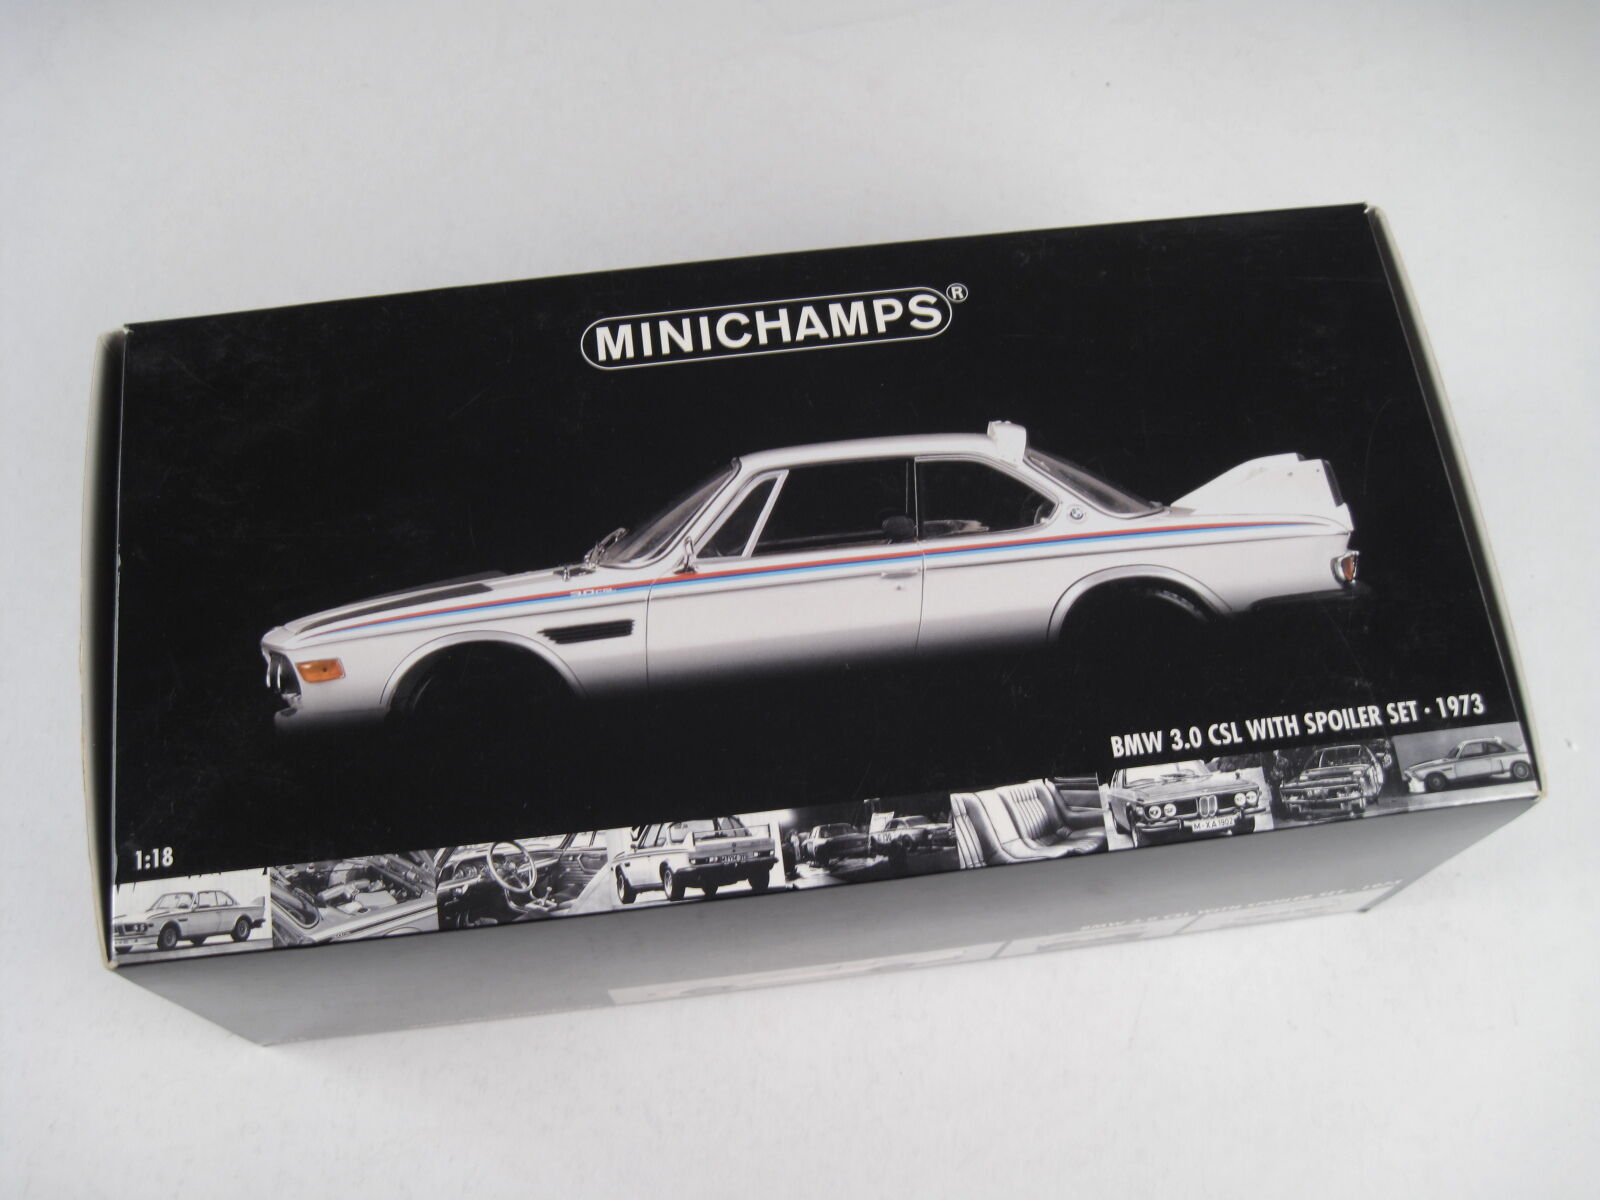 MINICHAMPS - BMW 3.0 CSL WITH SPOILER SET 1973 1 18 - NEW